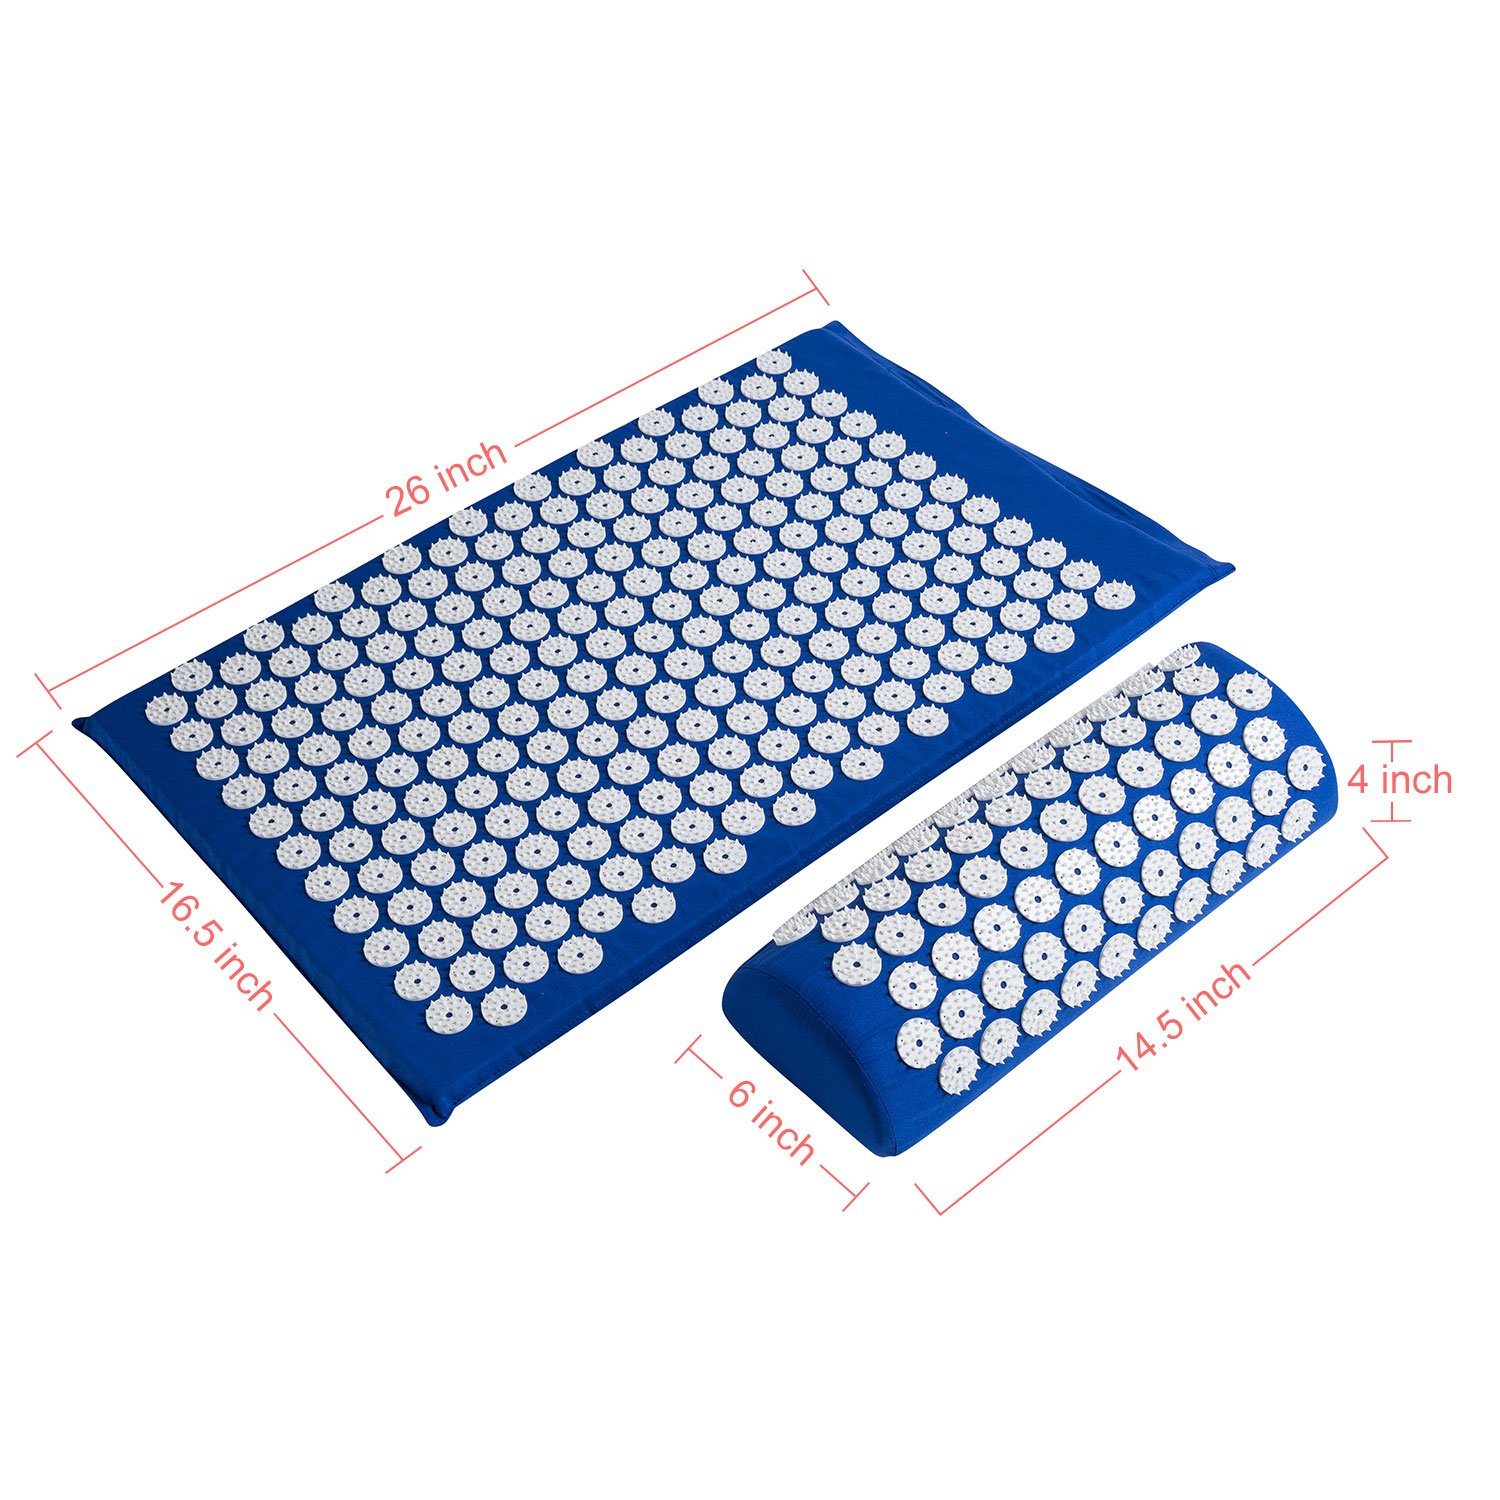 Acupressure Mat,Bed Grounding Mat Acupuncture Needles Back and Neck Pain Relief for Yoga and Travel,Relieves Stress,Lower Back Pain Relief (Blue) by Aquapro (Image #7)